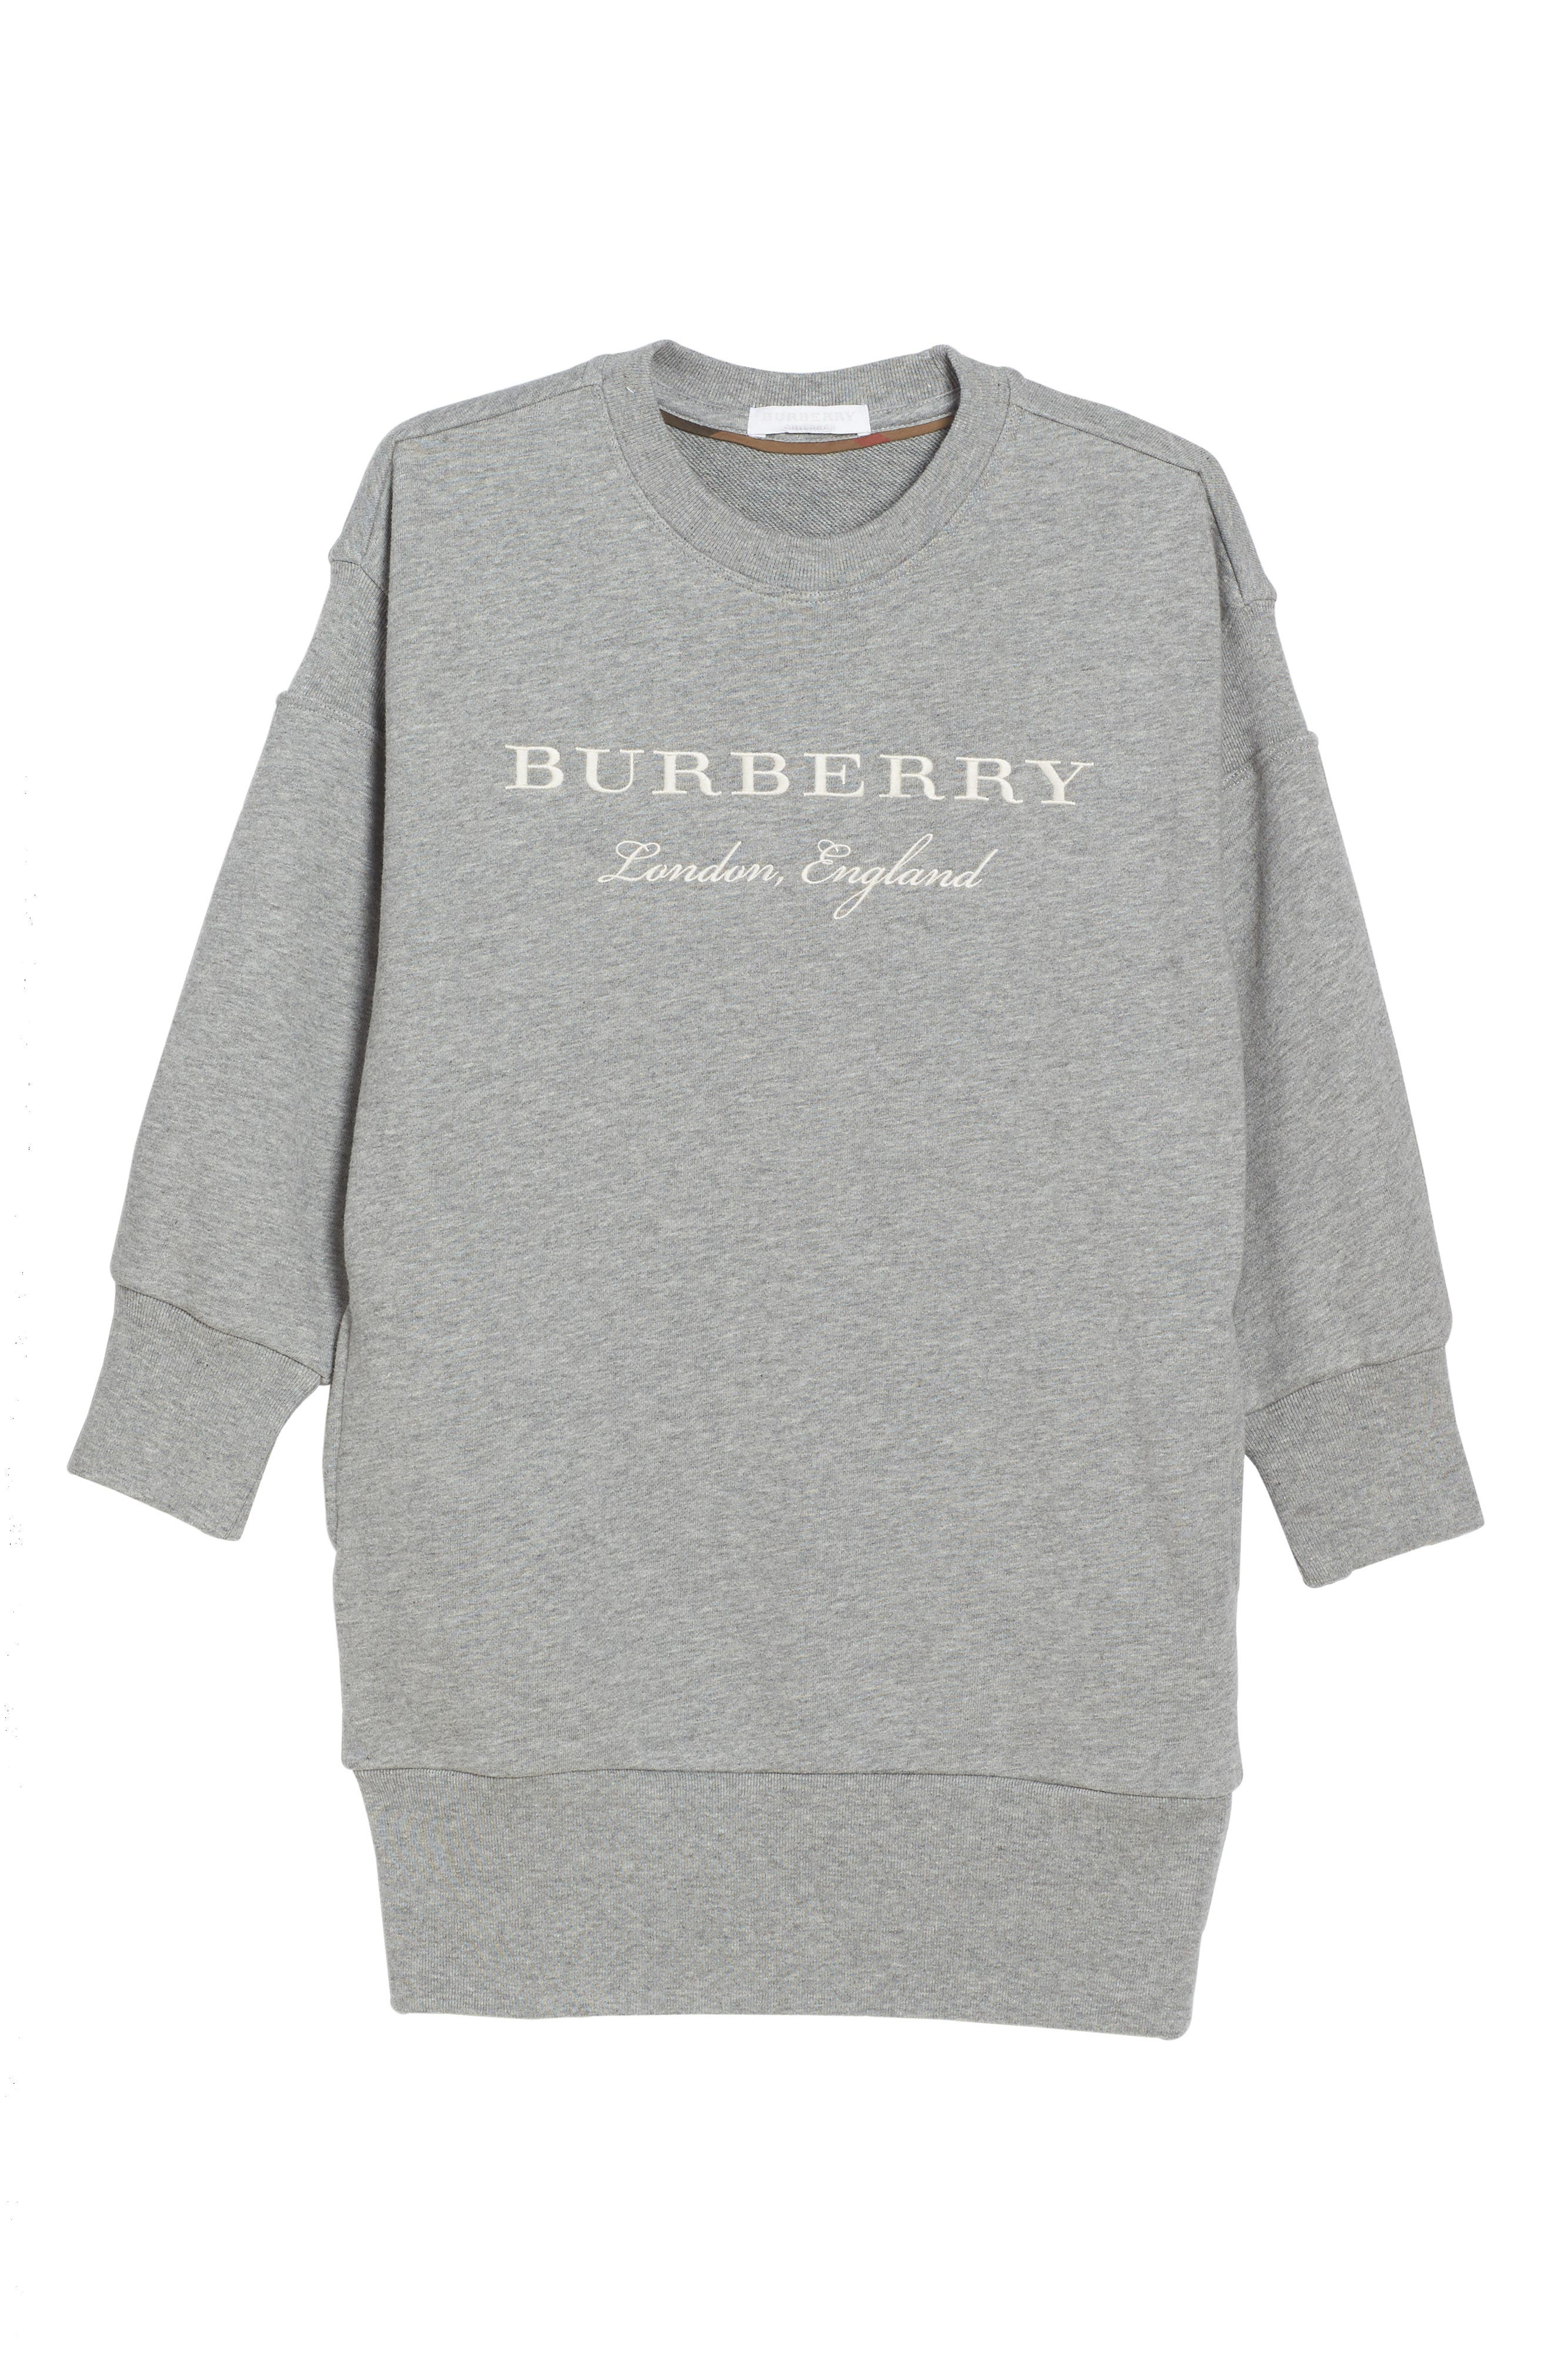 Burberry Sweatshirt Dress (Little Girls & Big Girls)